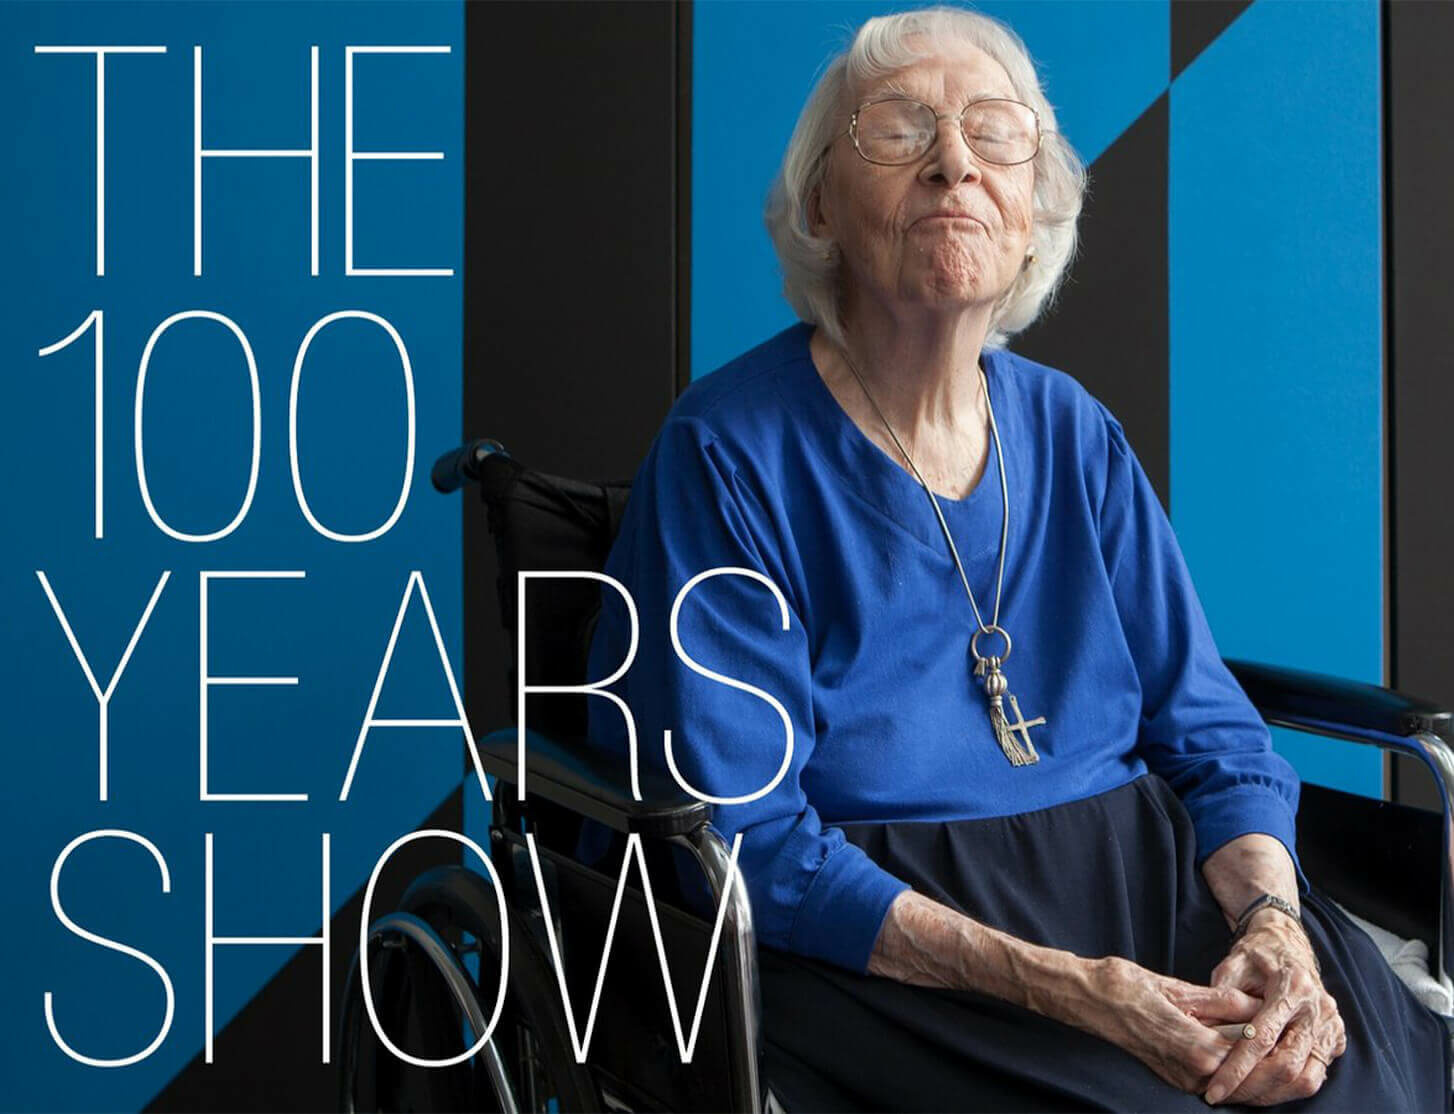 Spotlight Screening: Carmen Herrera 'The 100 Years Show'